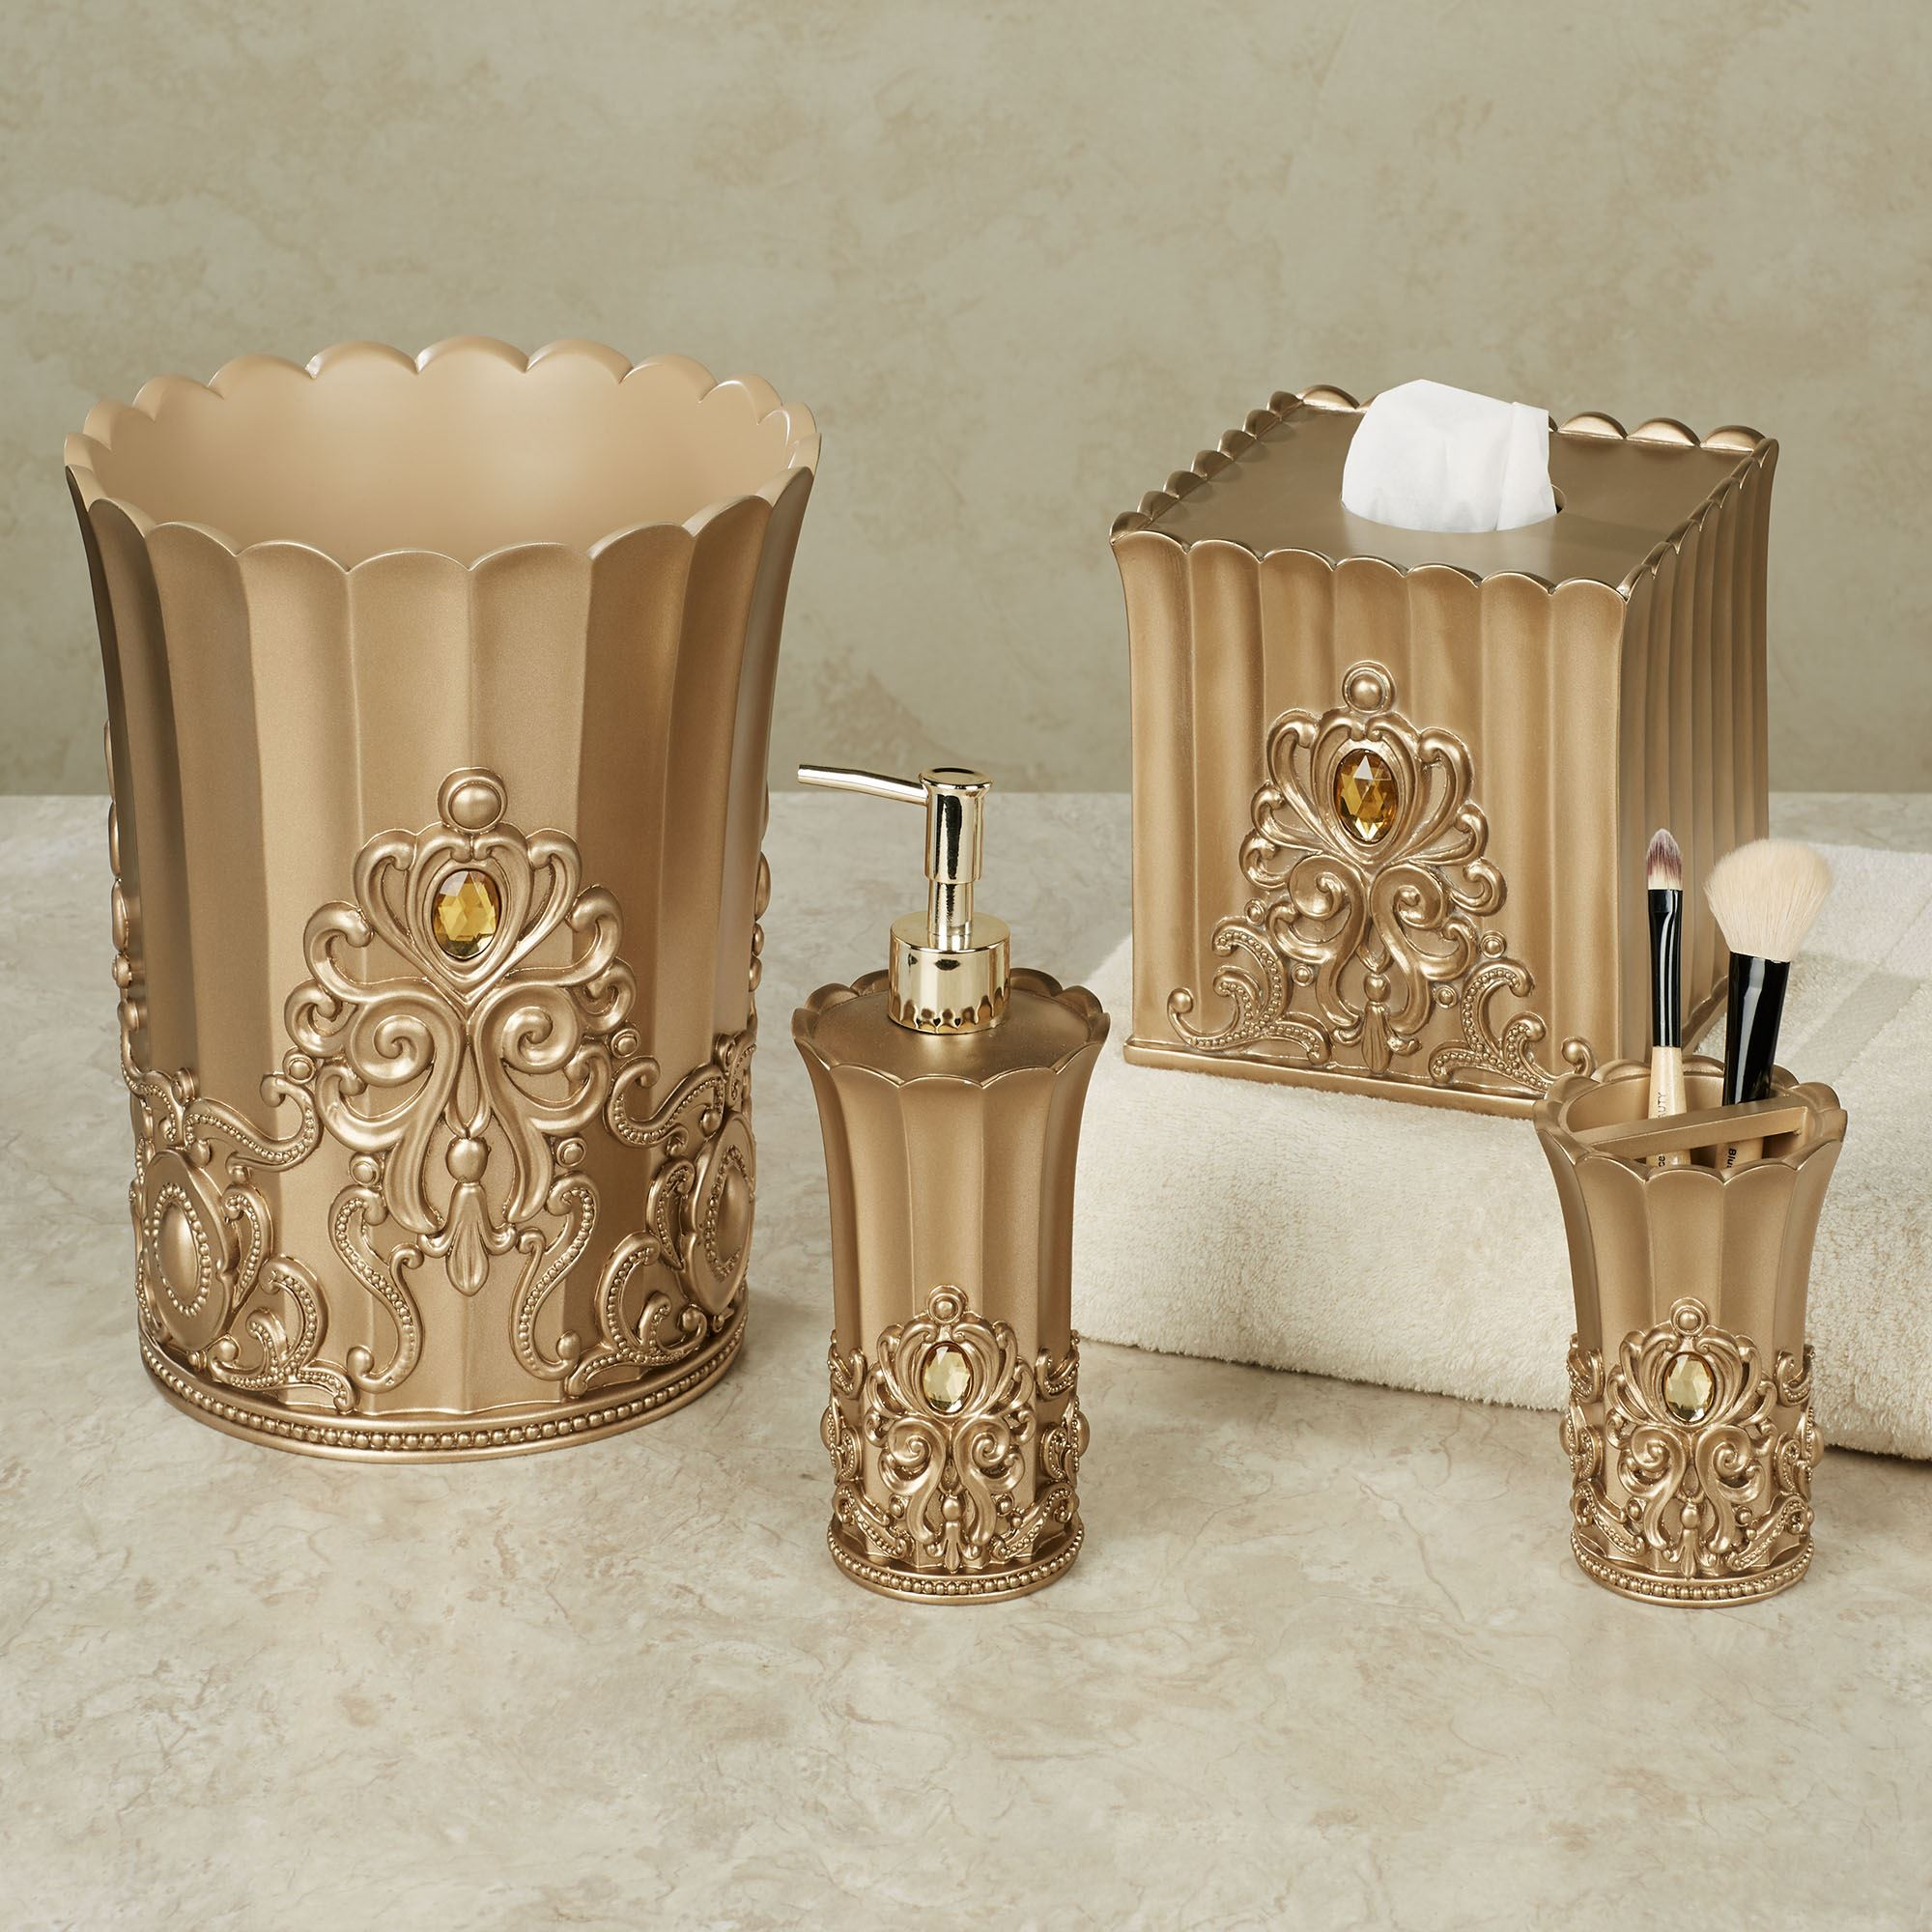 Opulence Champagne Gold Jeweled Bath Accessories